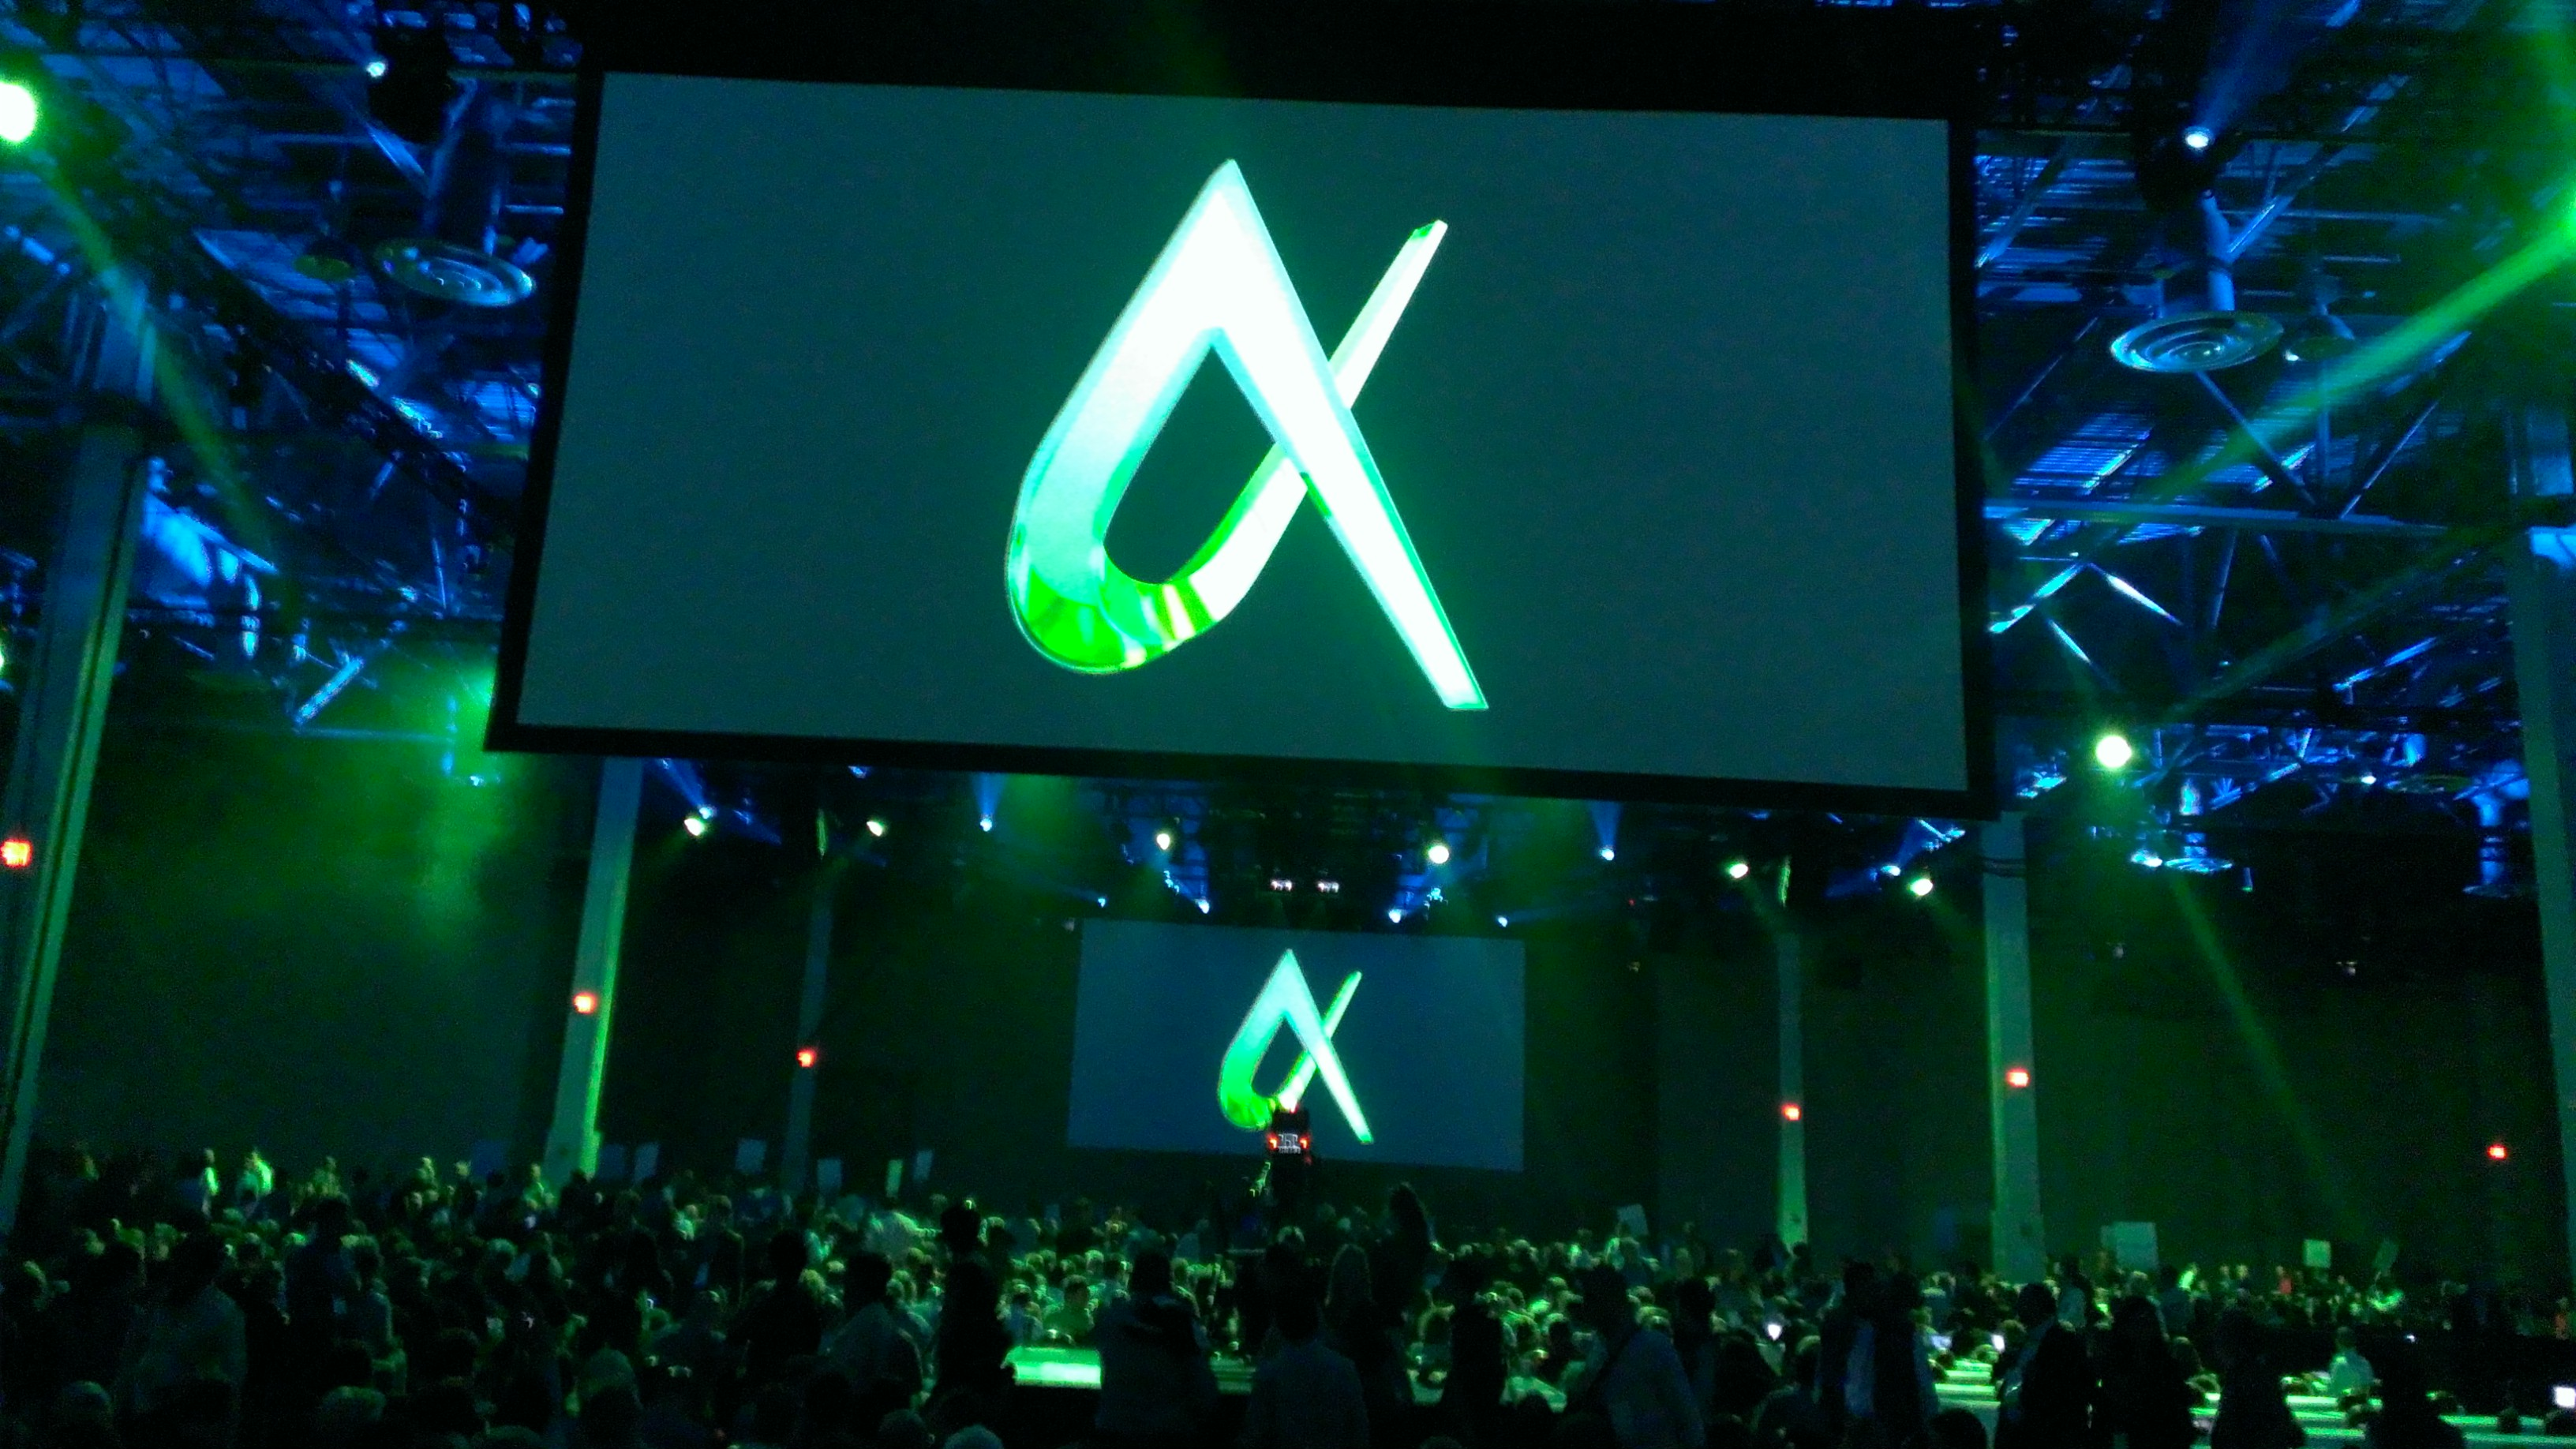 At Autodesk University 2013